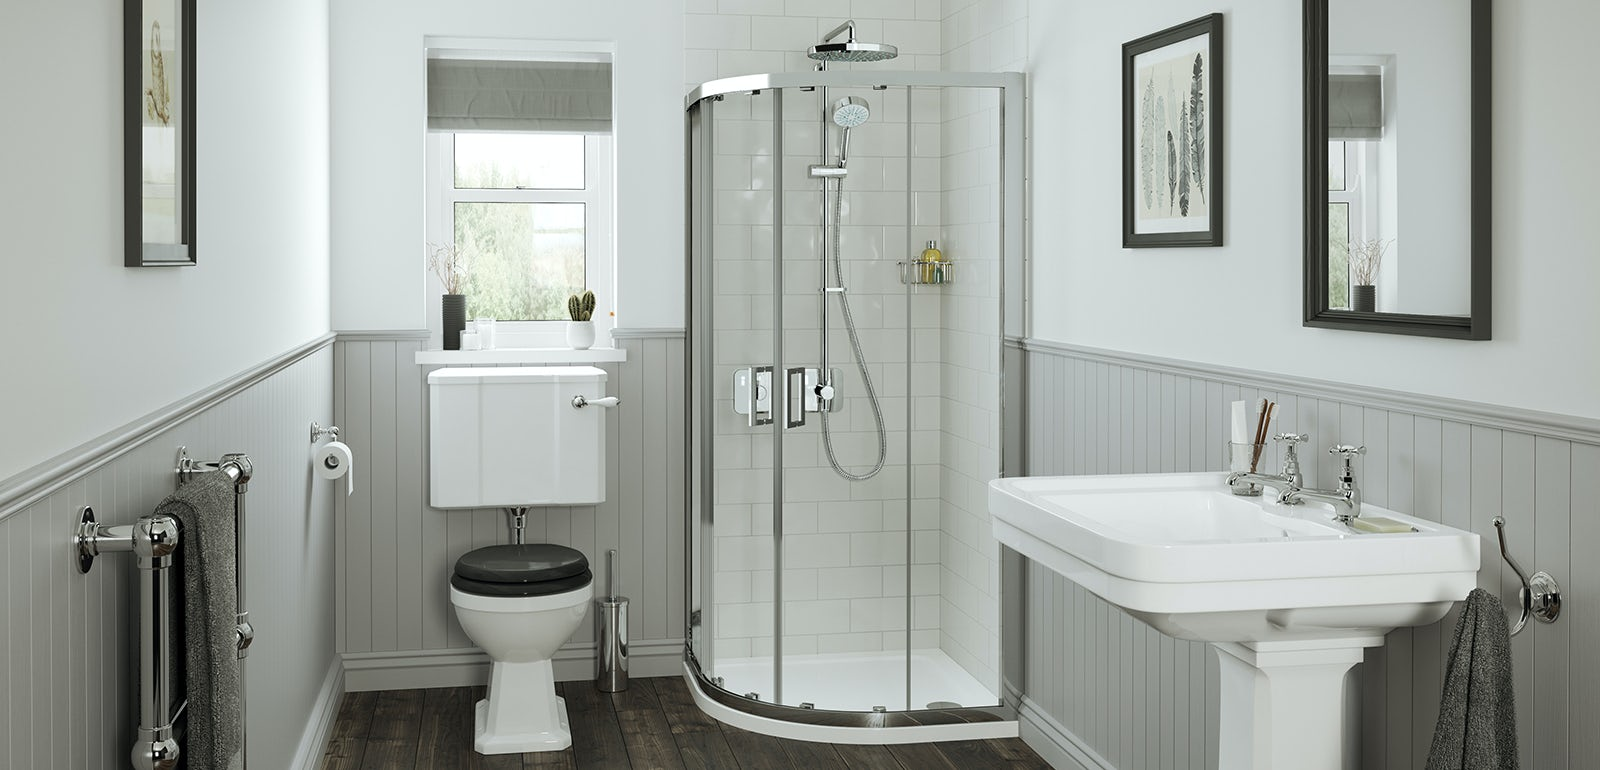 Small bathroom solutions from mira showers for Small bathroom solutions